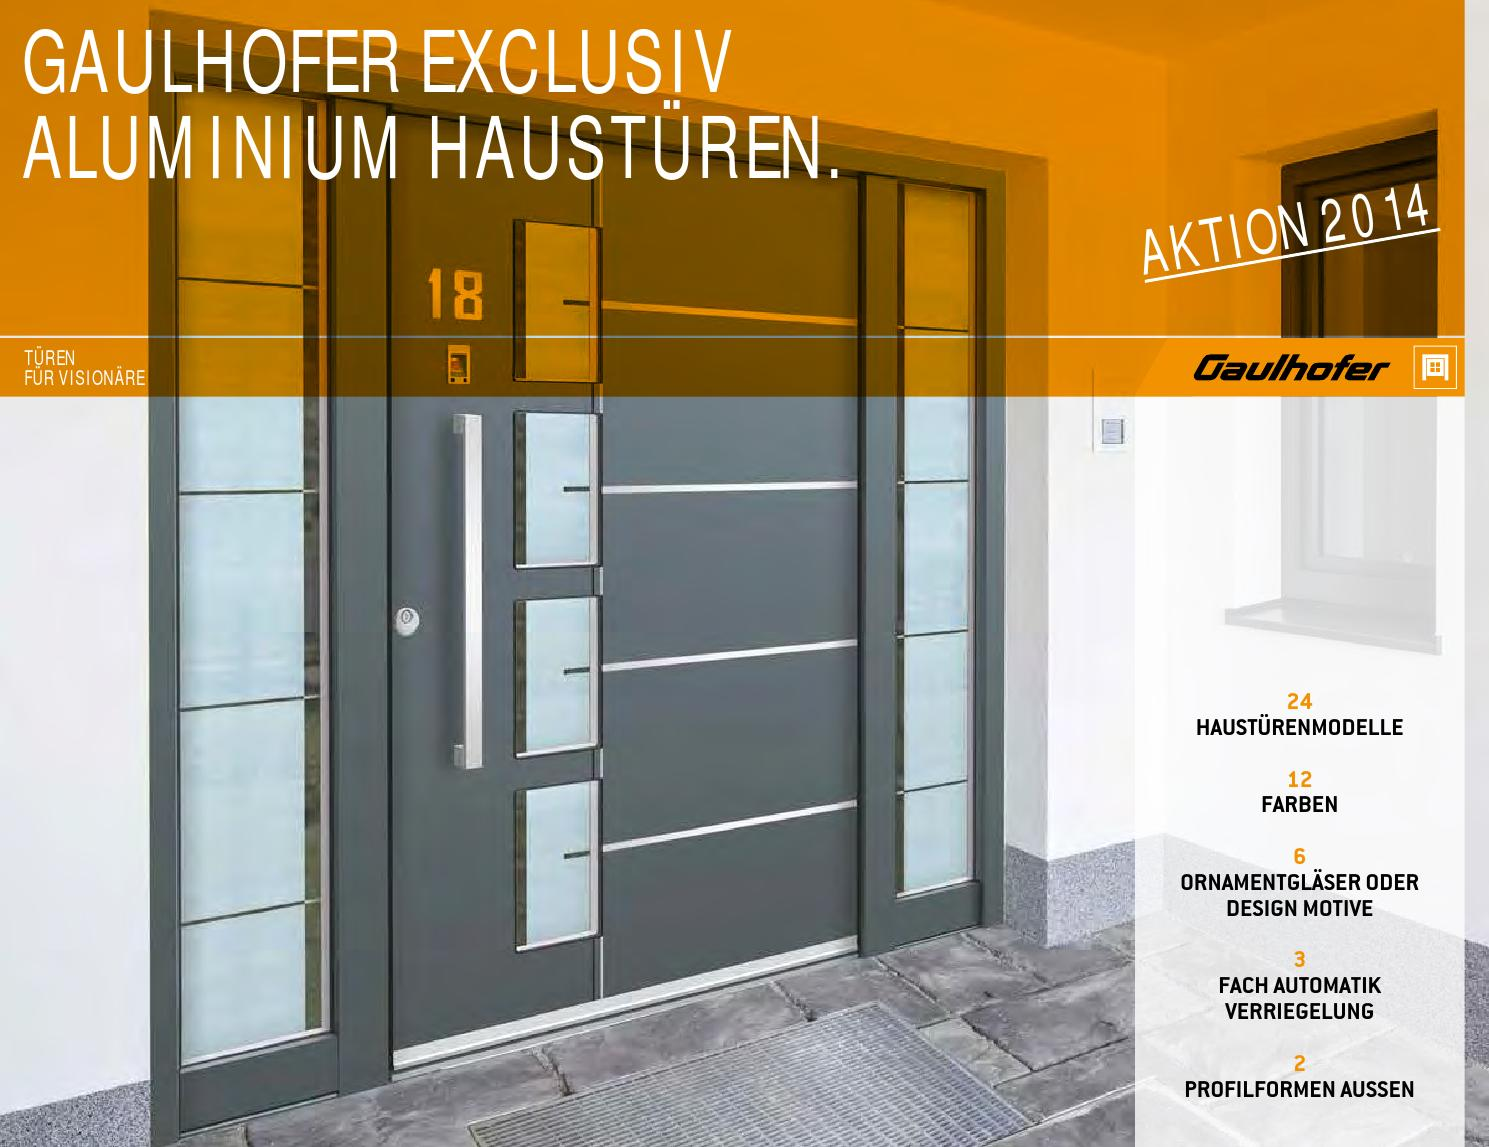 Aluminium Haustüren Fingerscan Alu Ht Gaulhofer Aktion2014 By Sascha Weyers Issuu